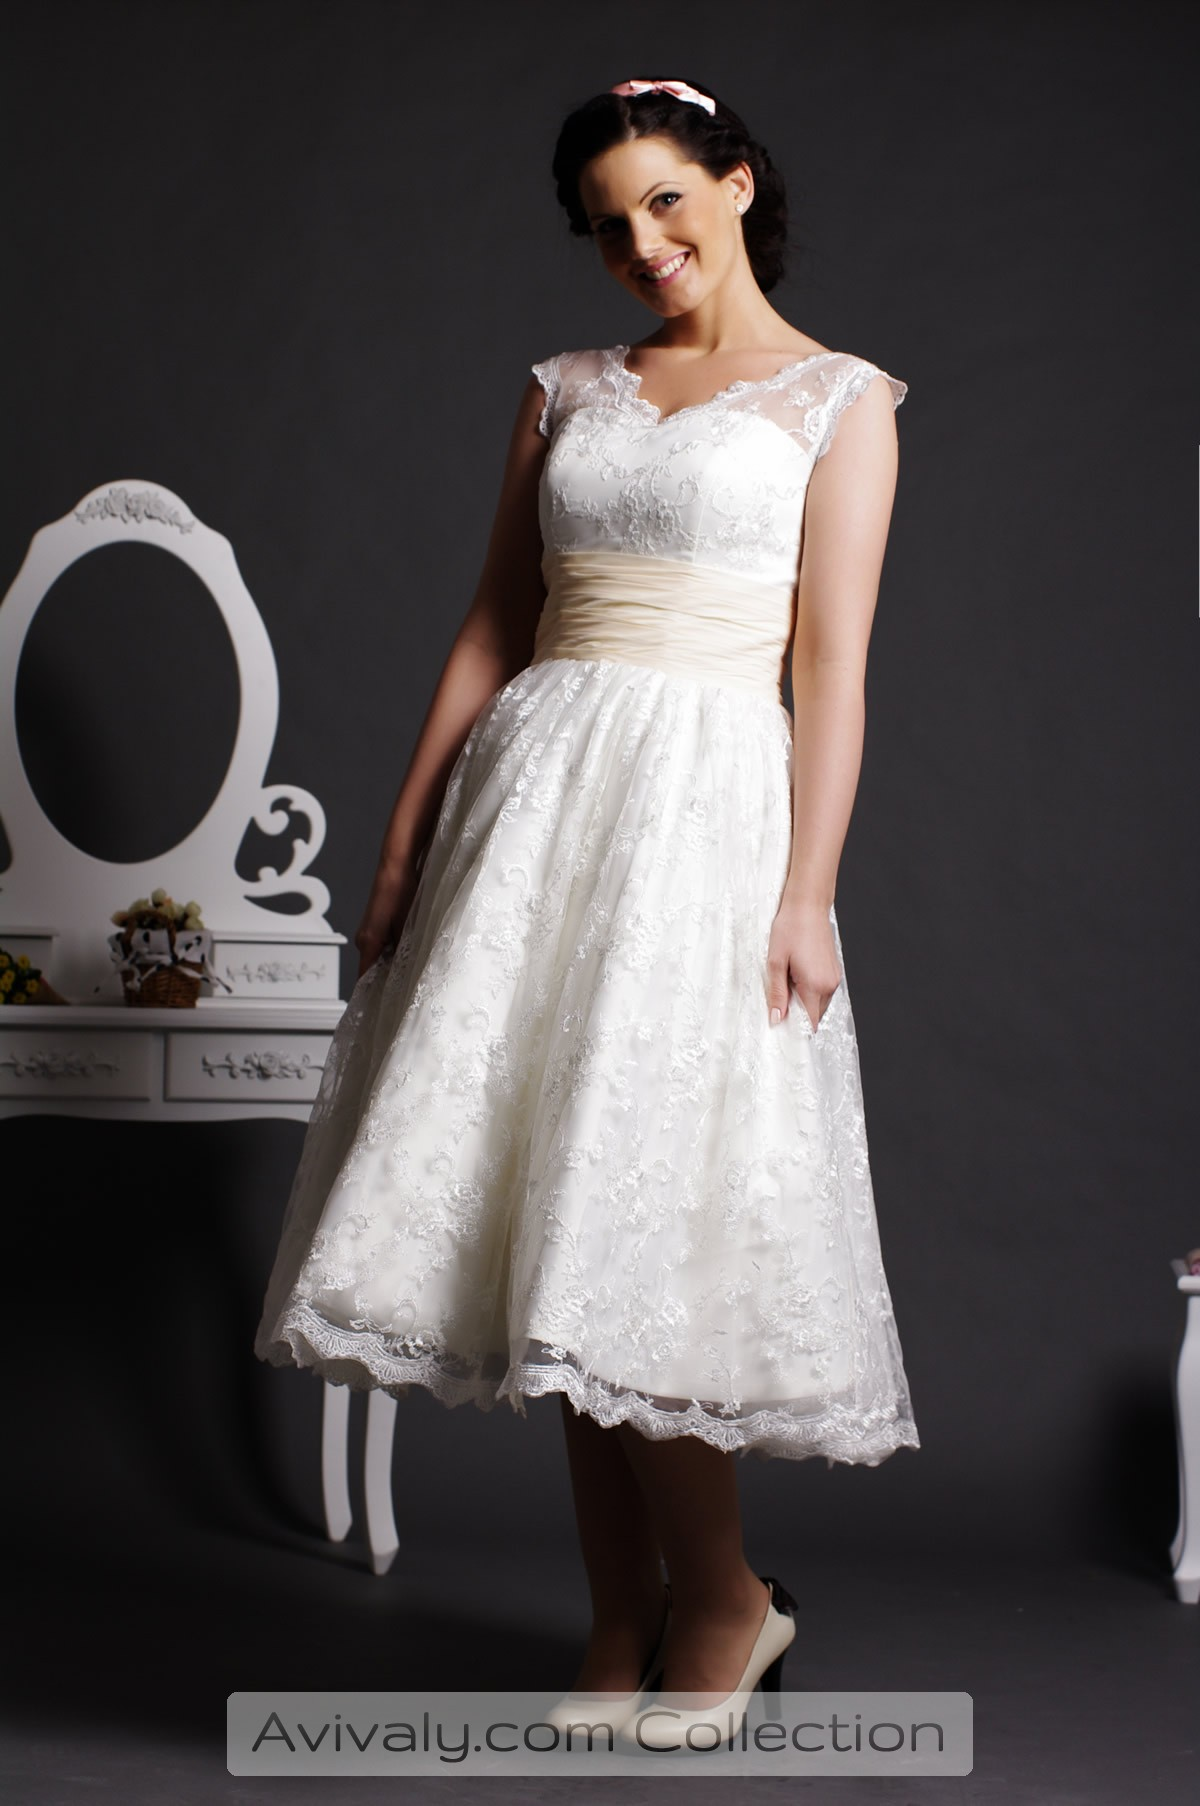 Willow Scalloped Edge Lace Layered Tea Length Ball Gown